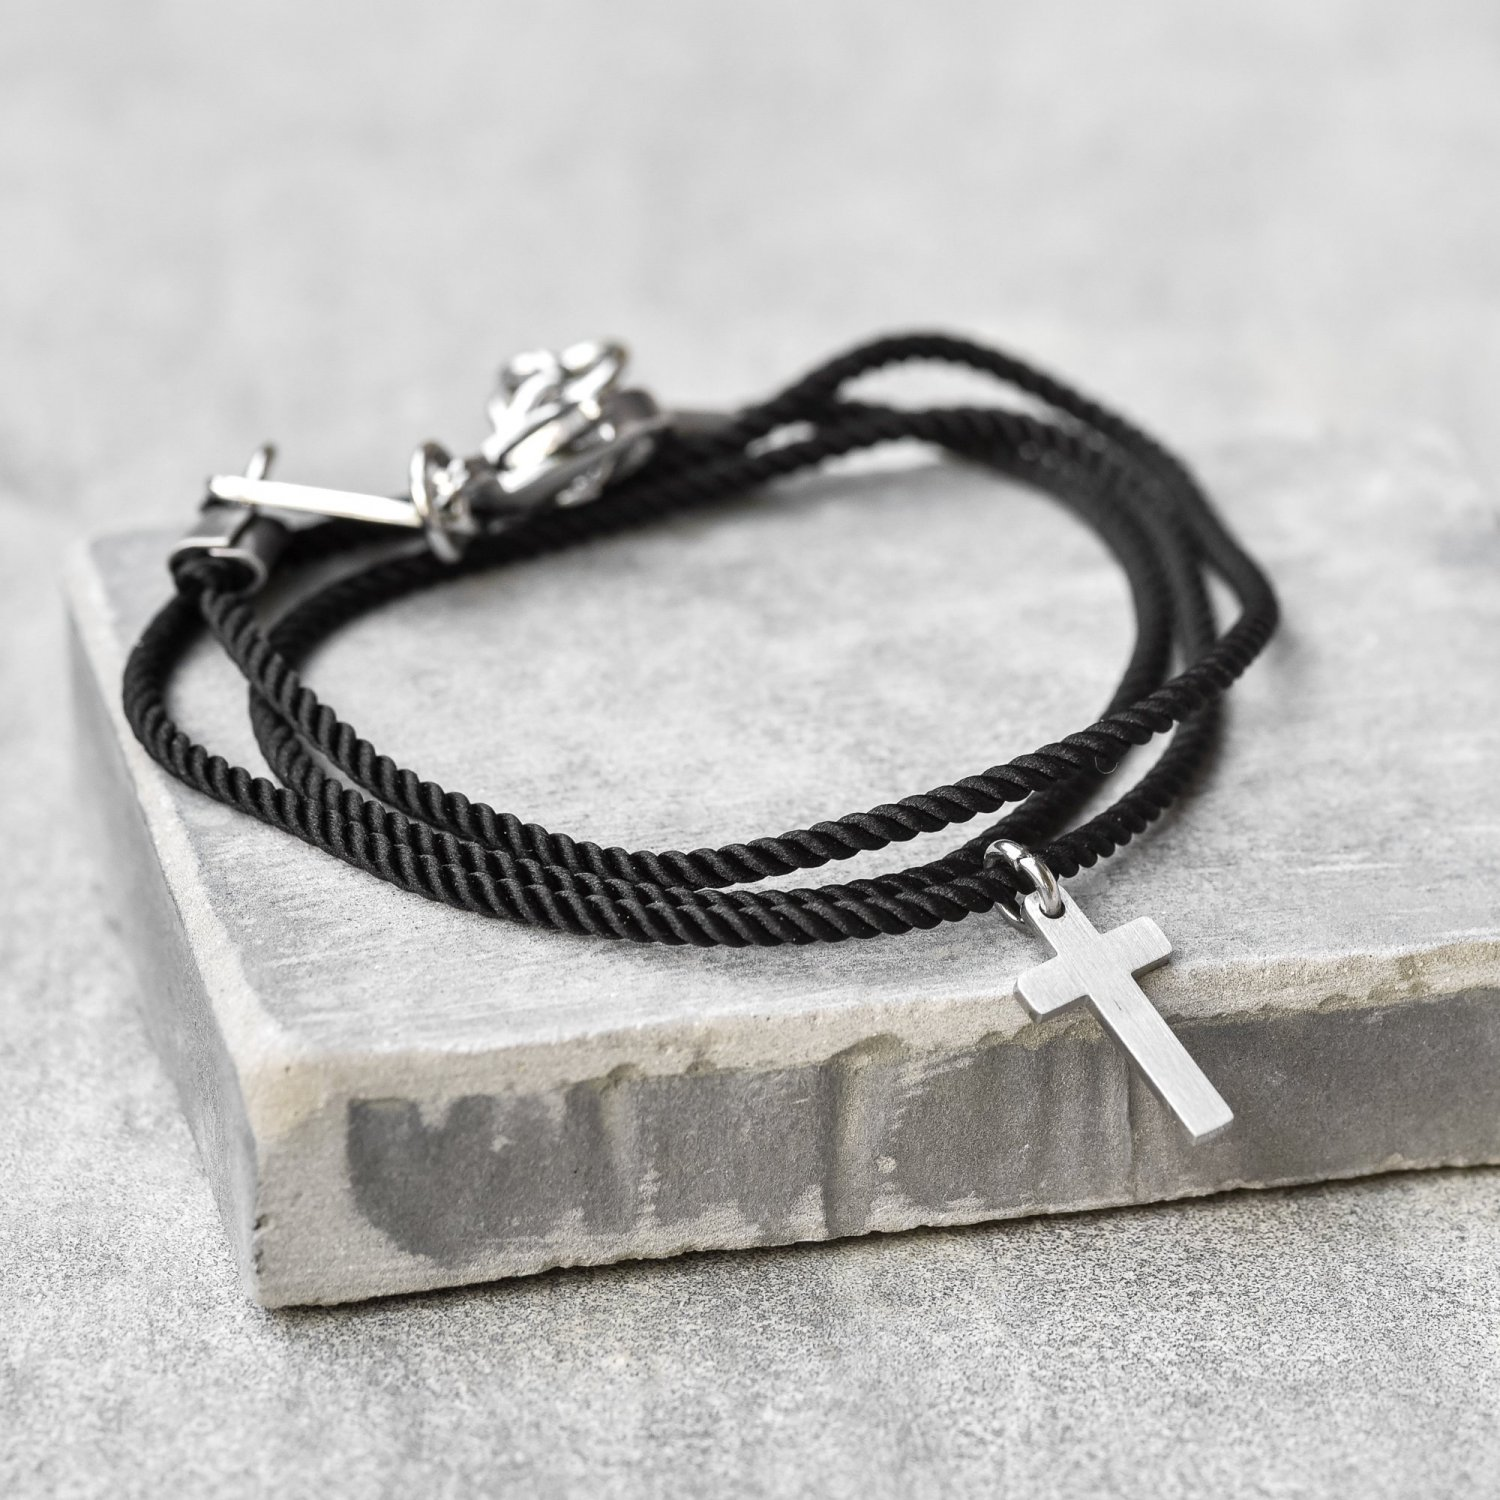 Men's Cross Bracelet - Men's Religious Bracelet - Men's Christian Bracelet - Men's Jewelry